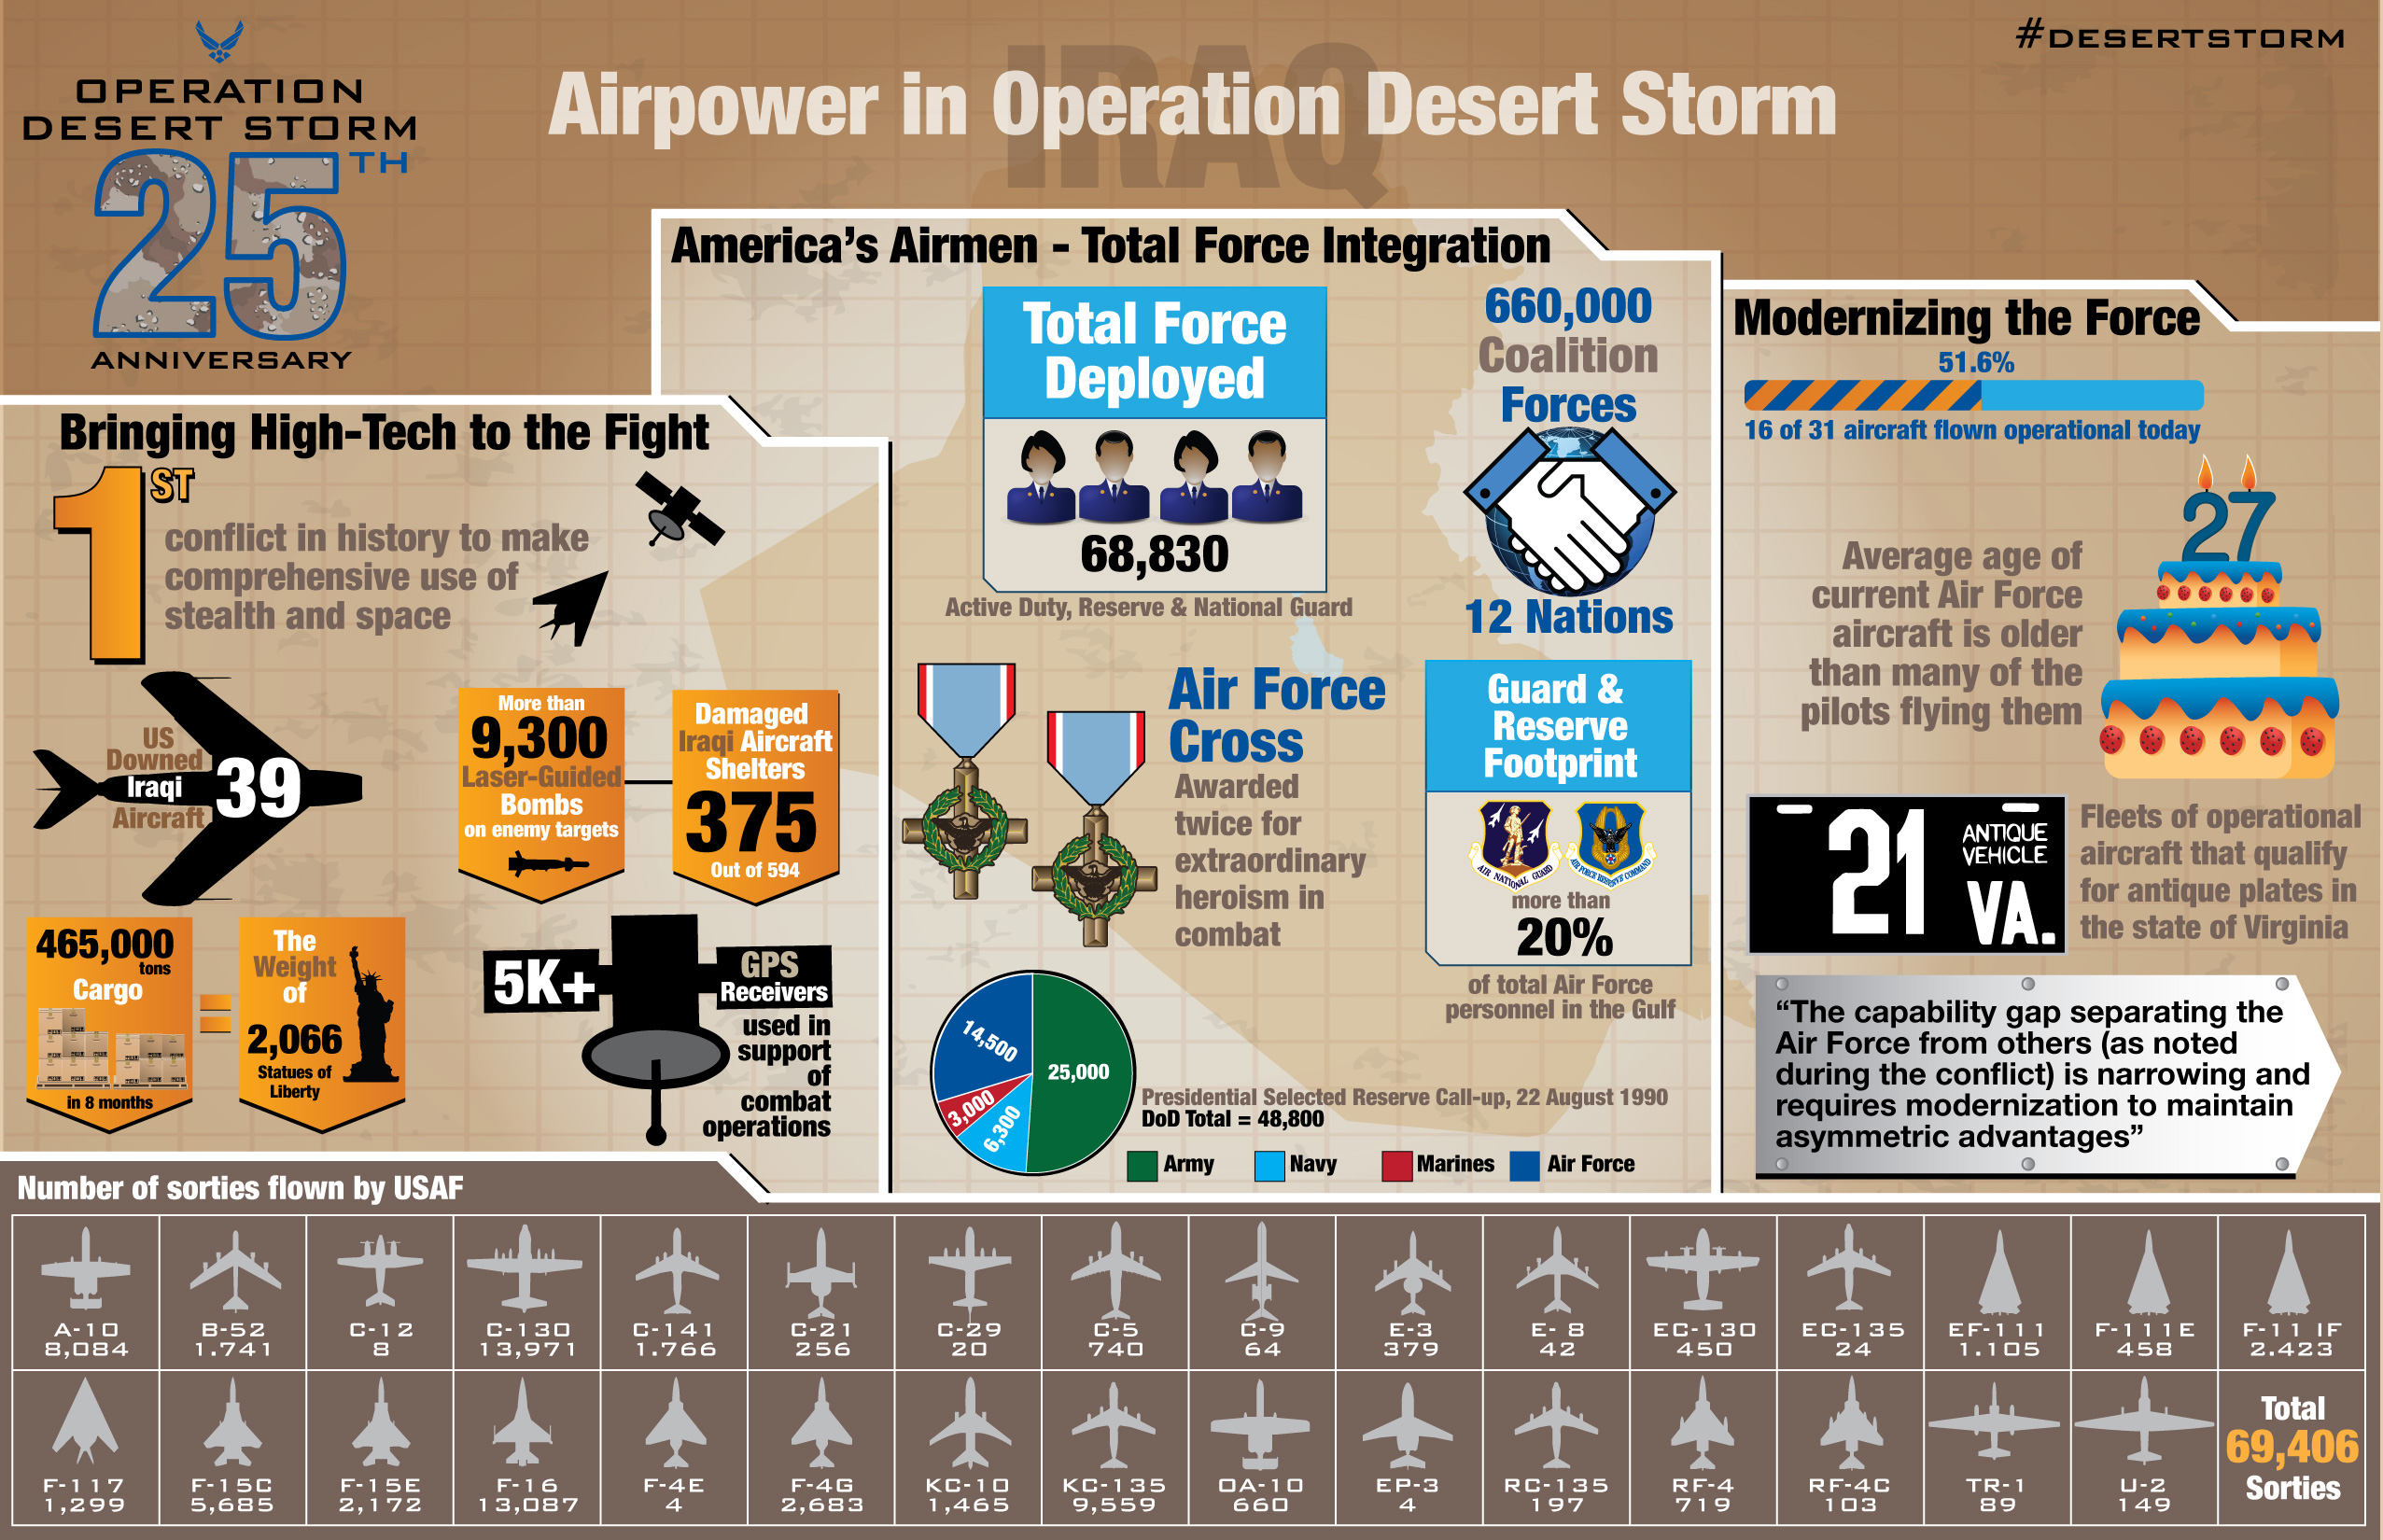 an analysis of the american operation desert storm in iraq On jan 17, 1991, then us president george bush, sr, launched operation desert storm against iraq, in order to force iraqi troops from kuwaitit was the firstus war after the fall of.